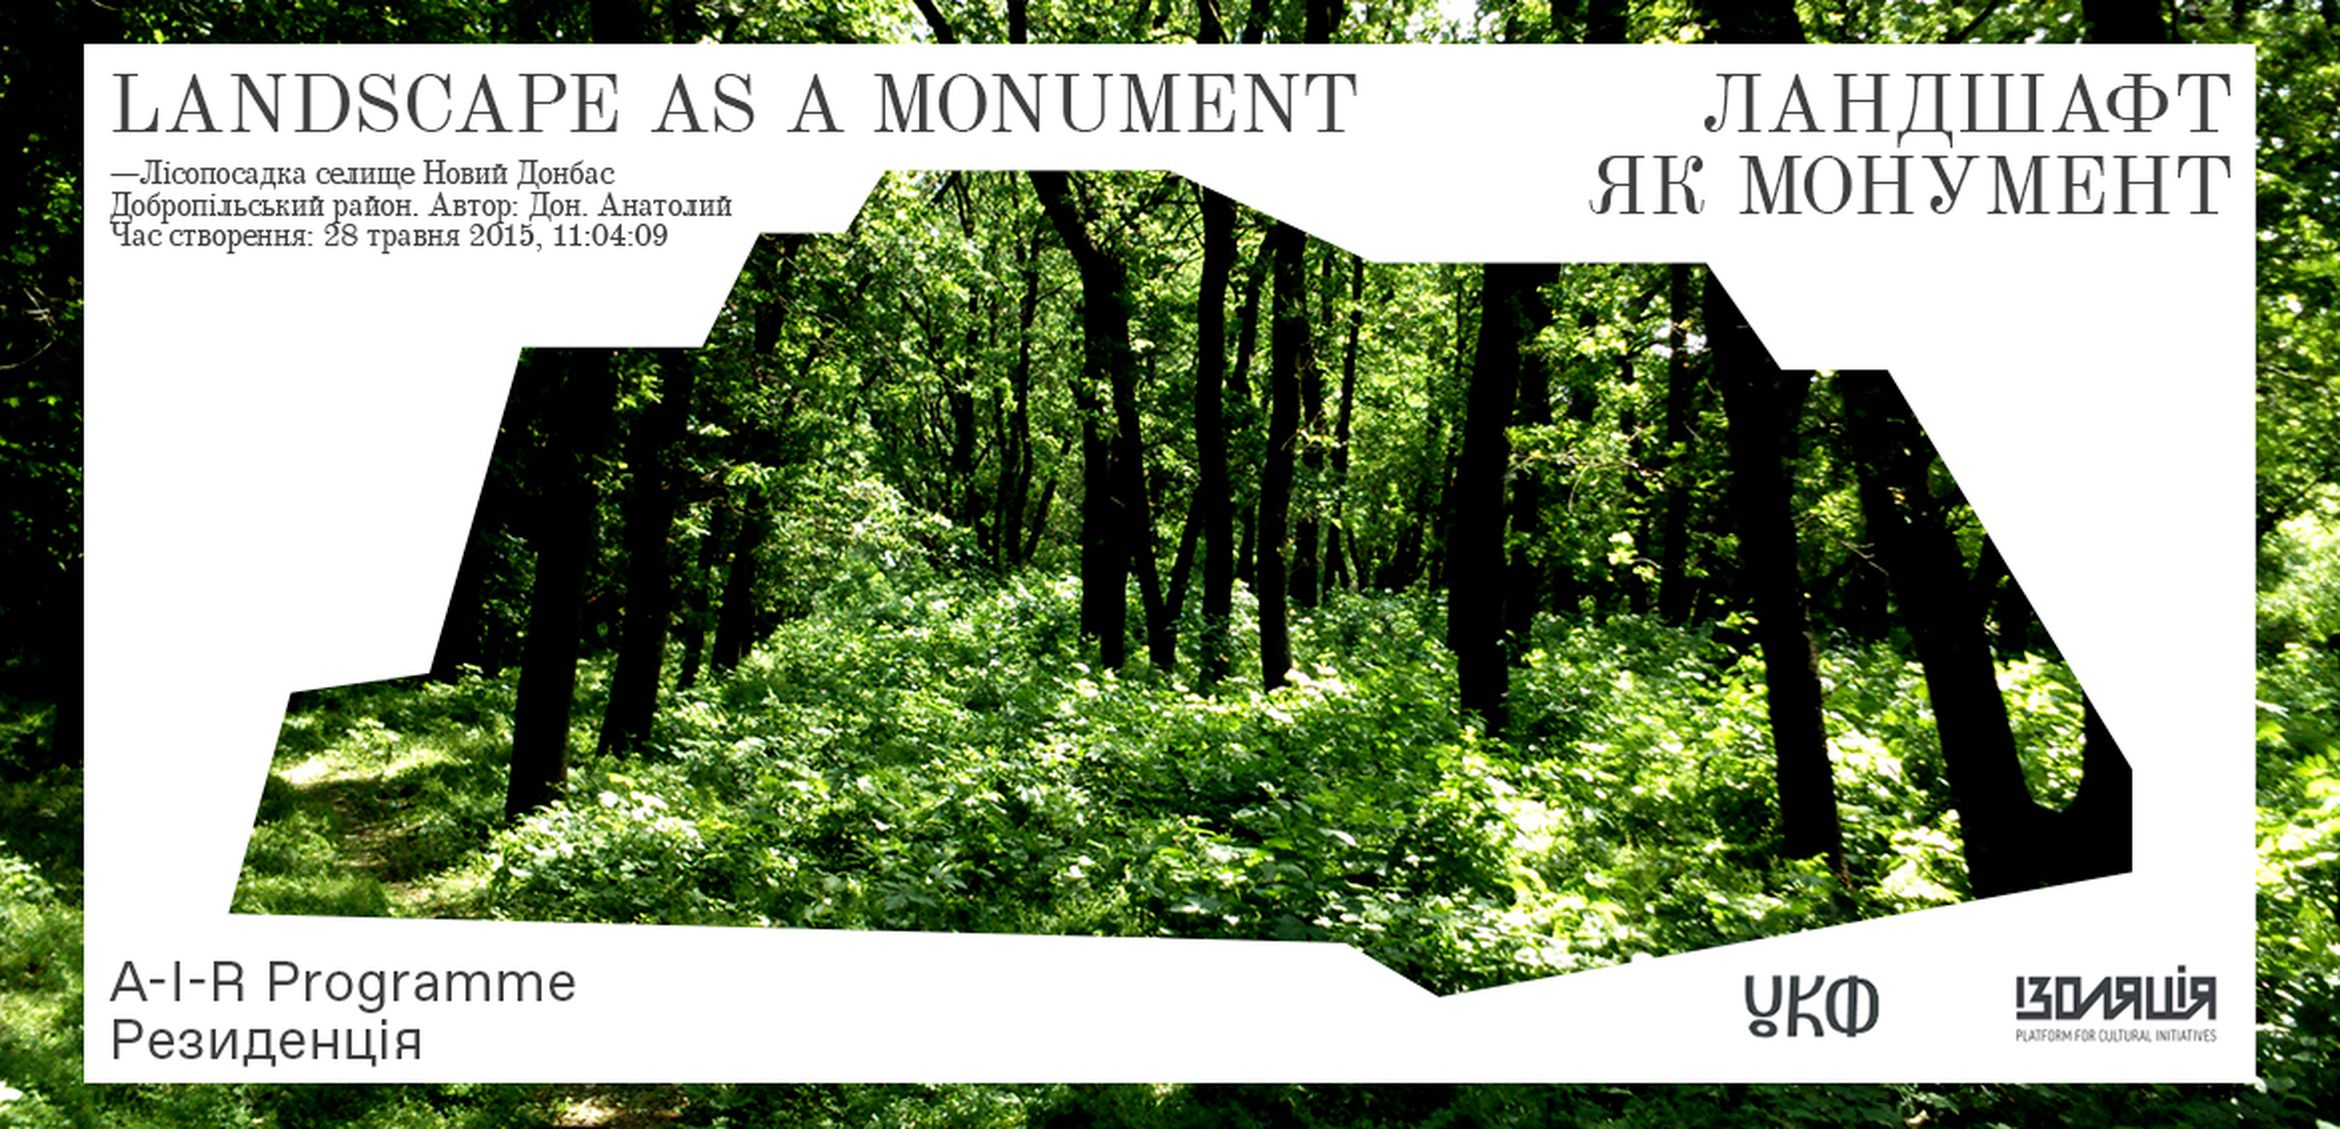 Landscape As a Monument A-I-R Programme